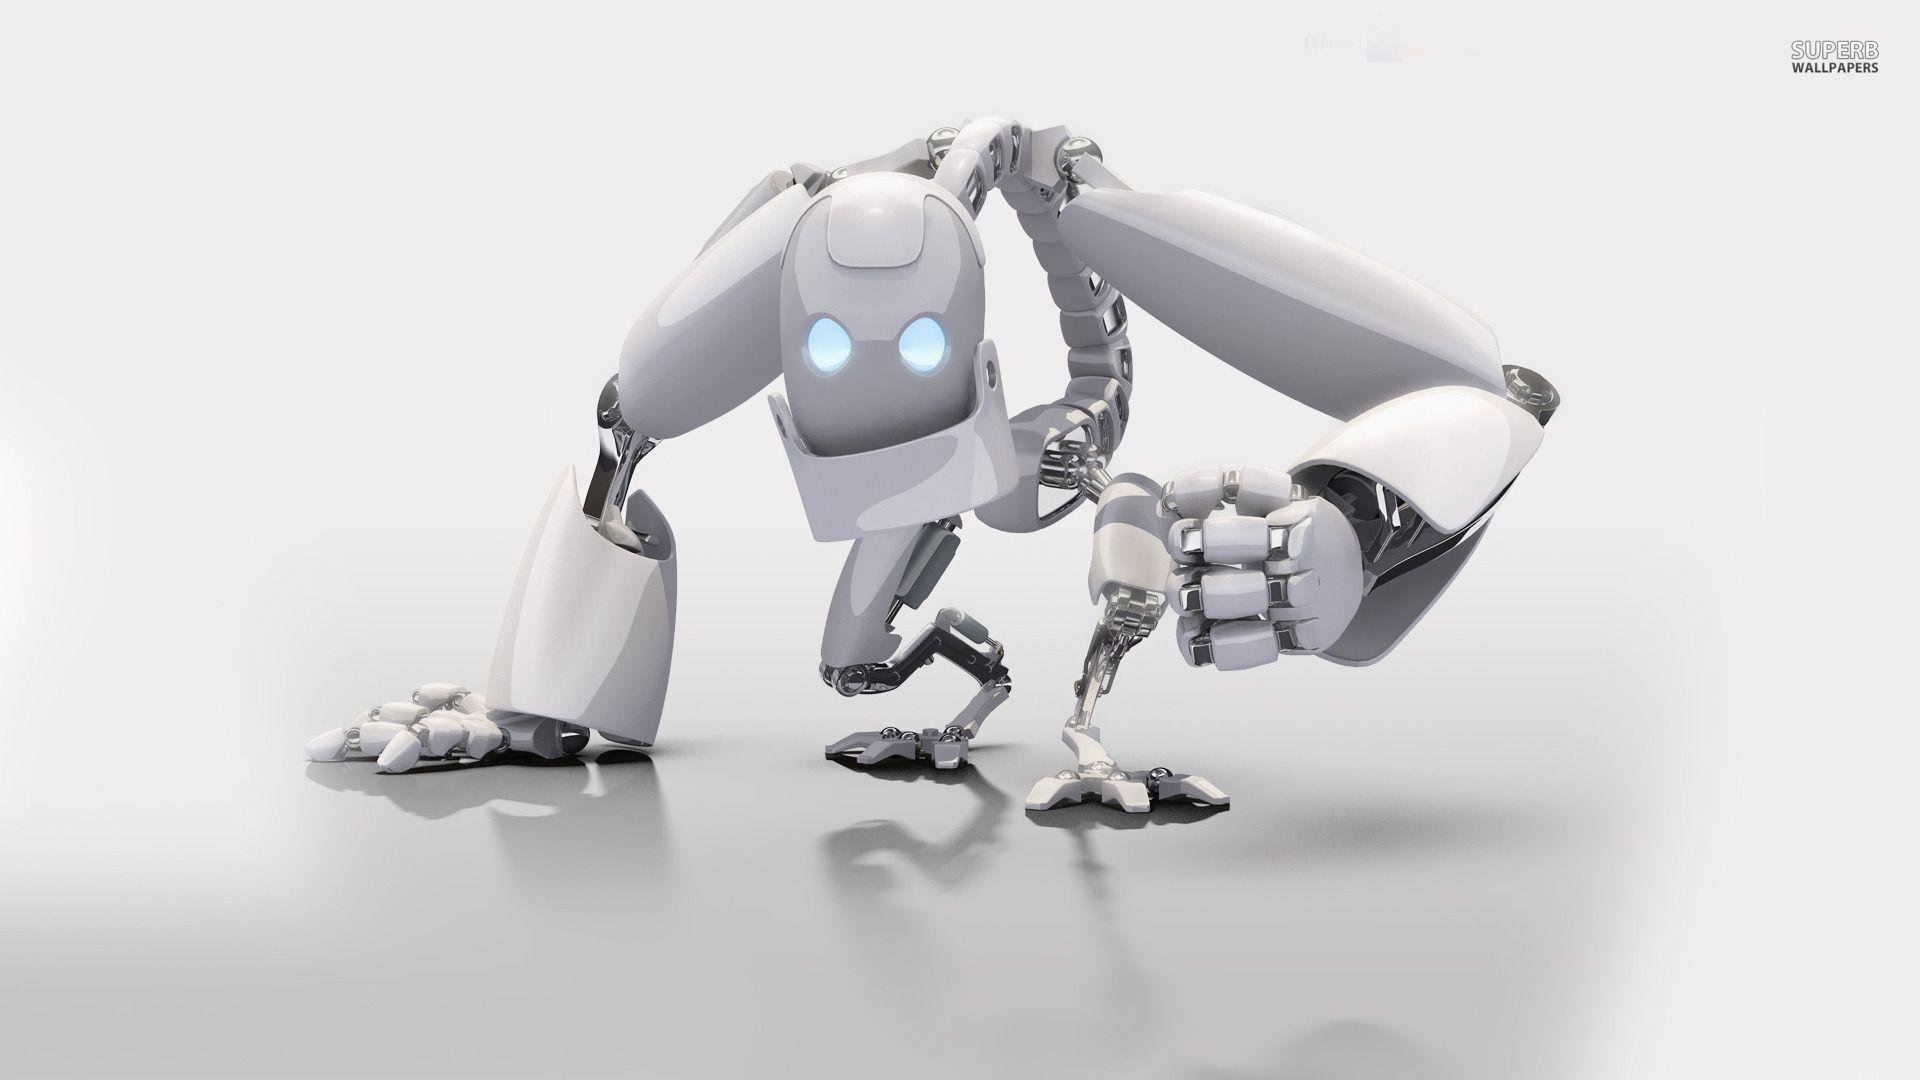 Download 3D Robot Wallpaper